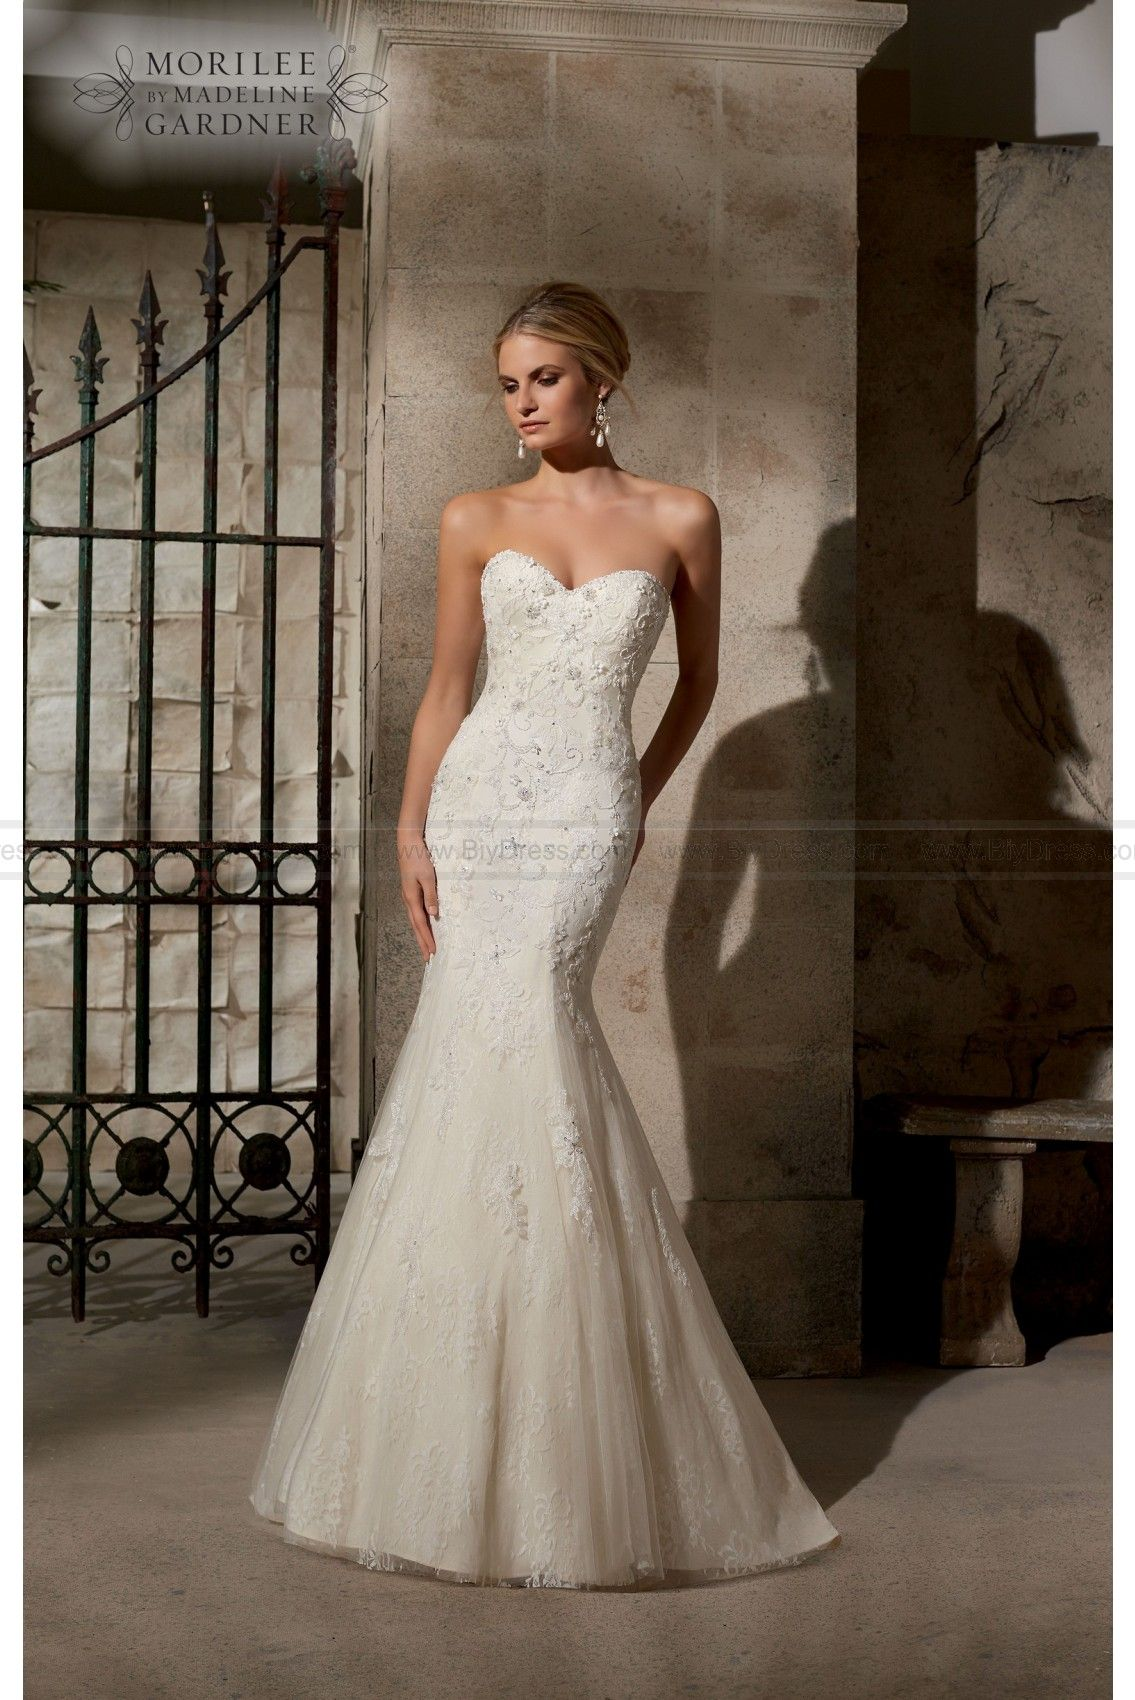 Mori lee madeline gardner wedding dress   Mori Lee Wedding Dresses  Robes de Mariée Weeding Dress